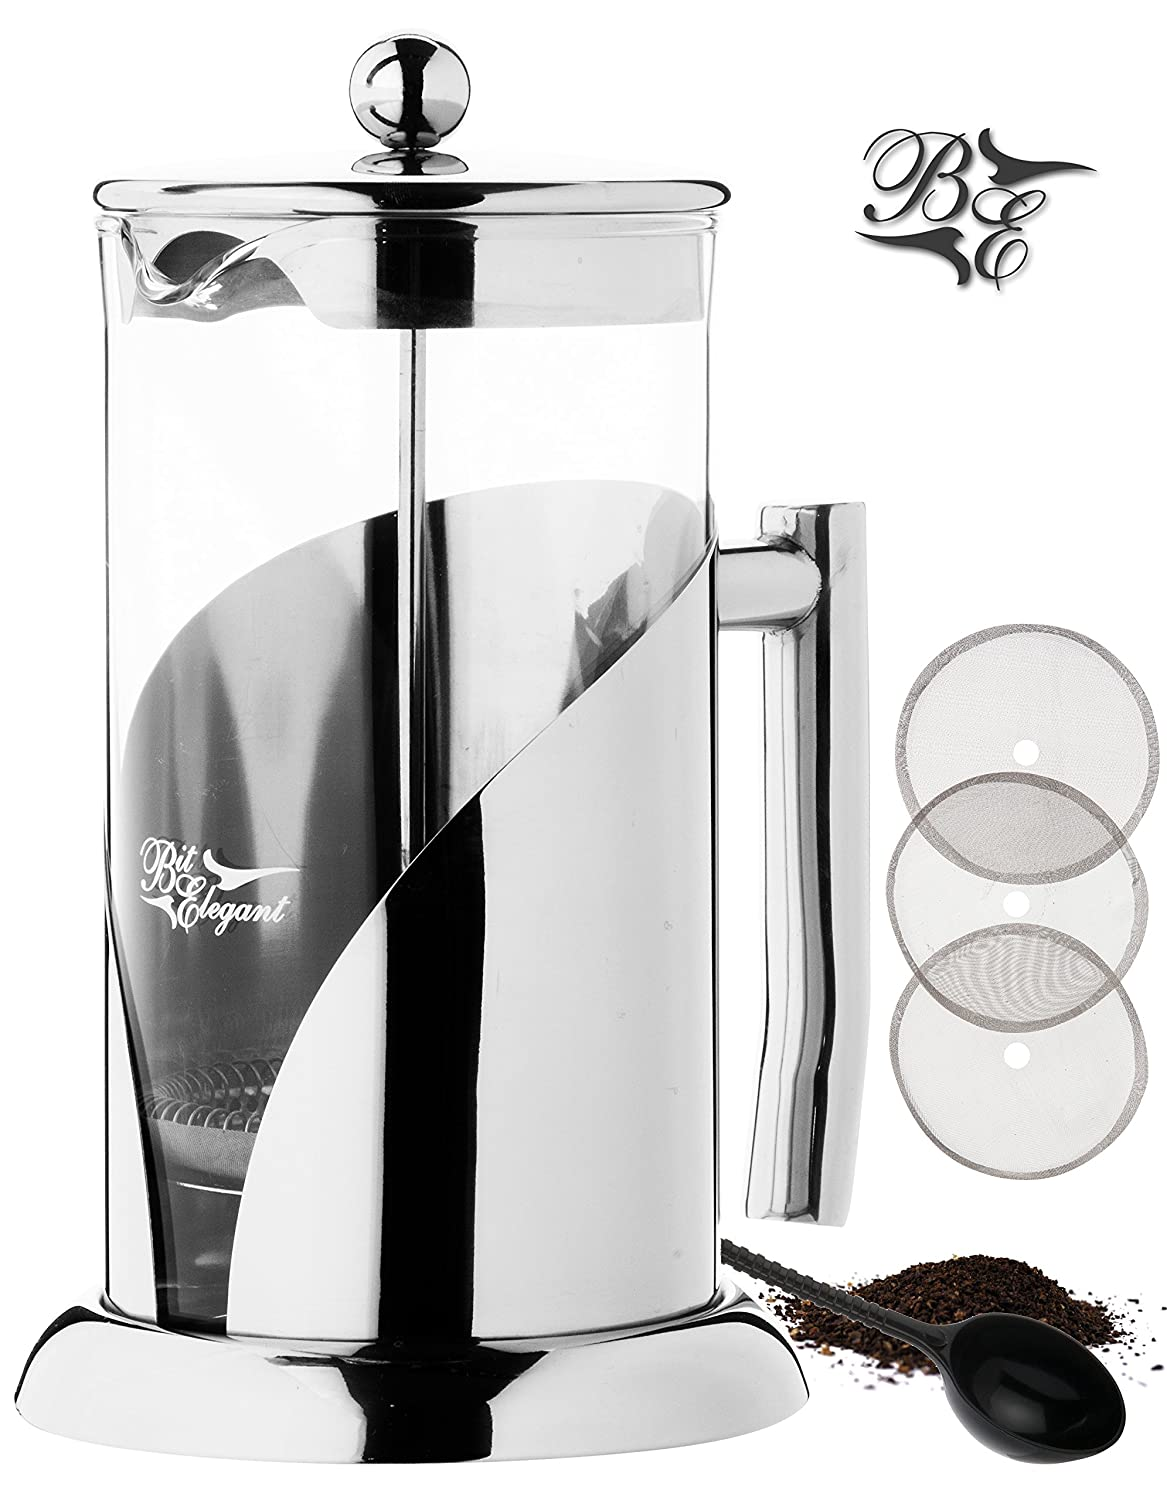 BitElegant French Press Coffee Maker 34 Oz, Luxury Heavy Duty Stainless Steel and Thermal Shock Resistant Borosilicate Glass Coffee Press Plunger No-Plastic